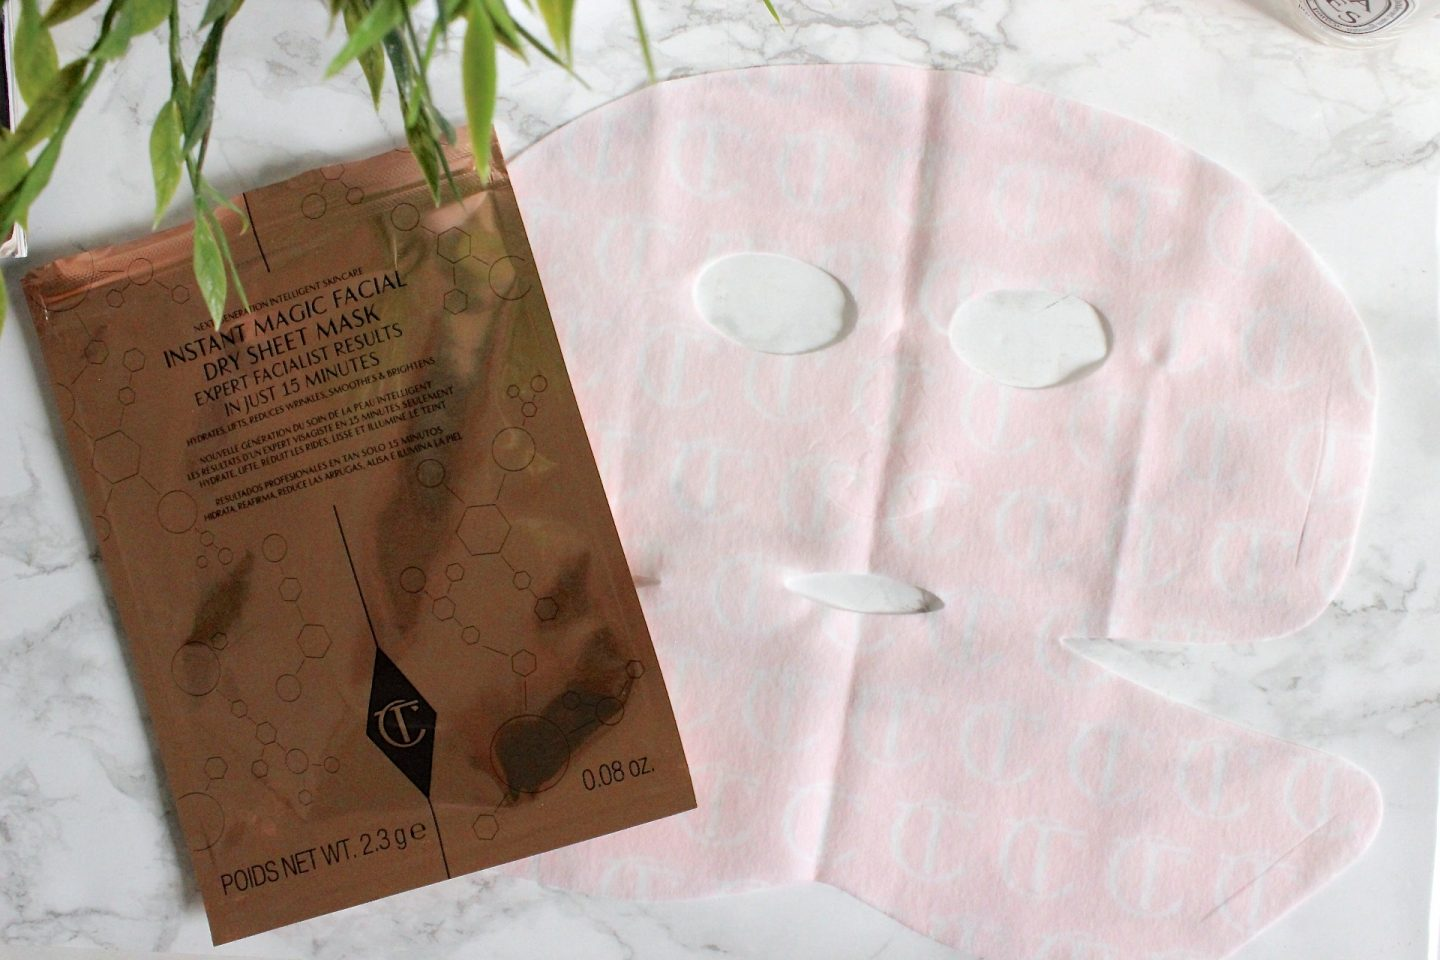 Charlotte Tilbury Instant Magic Facial Dry Sheet Mask